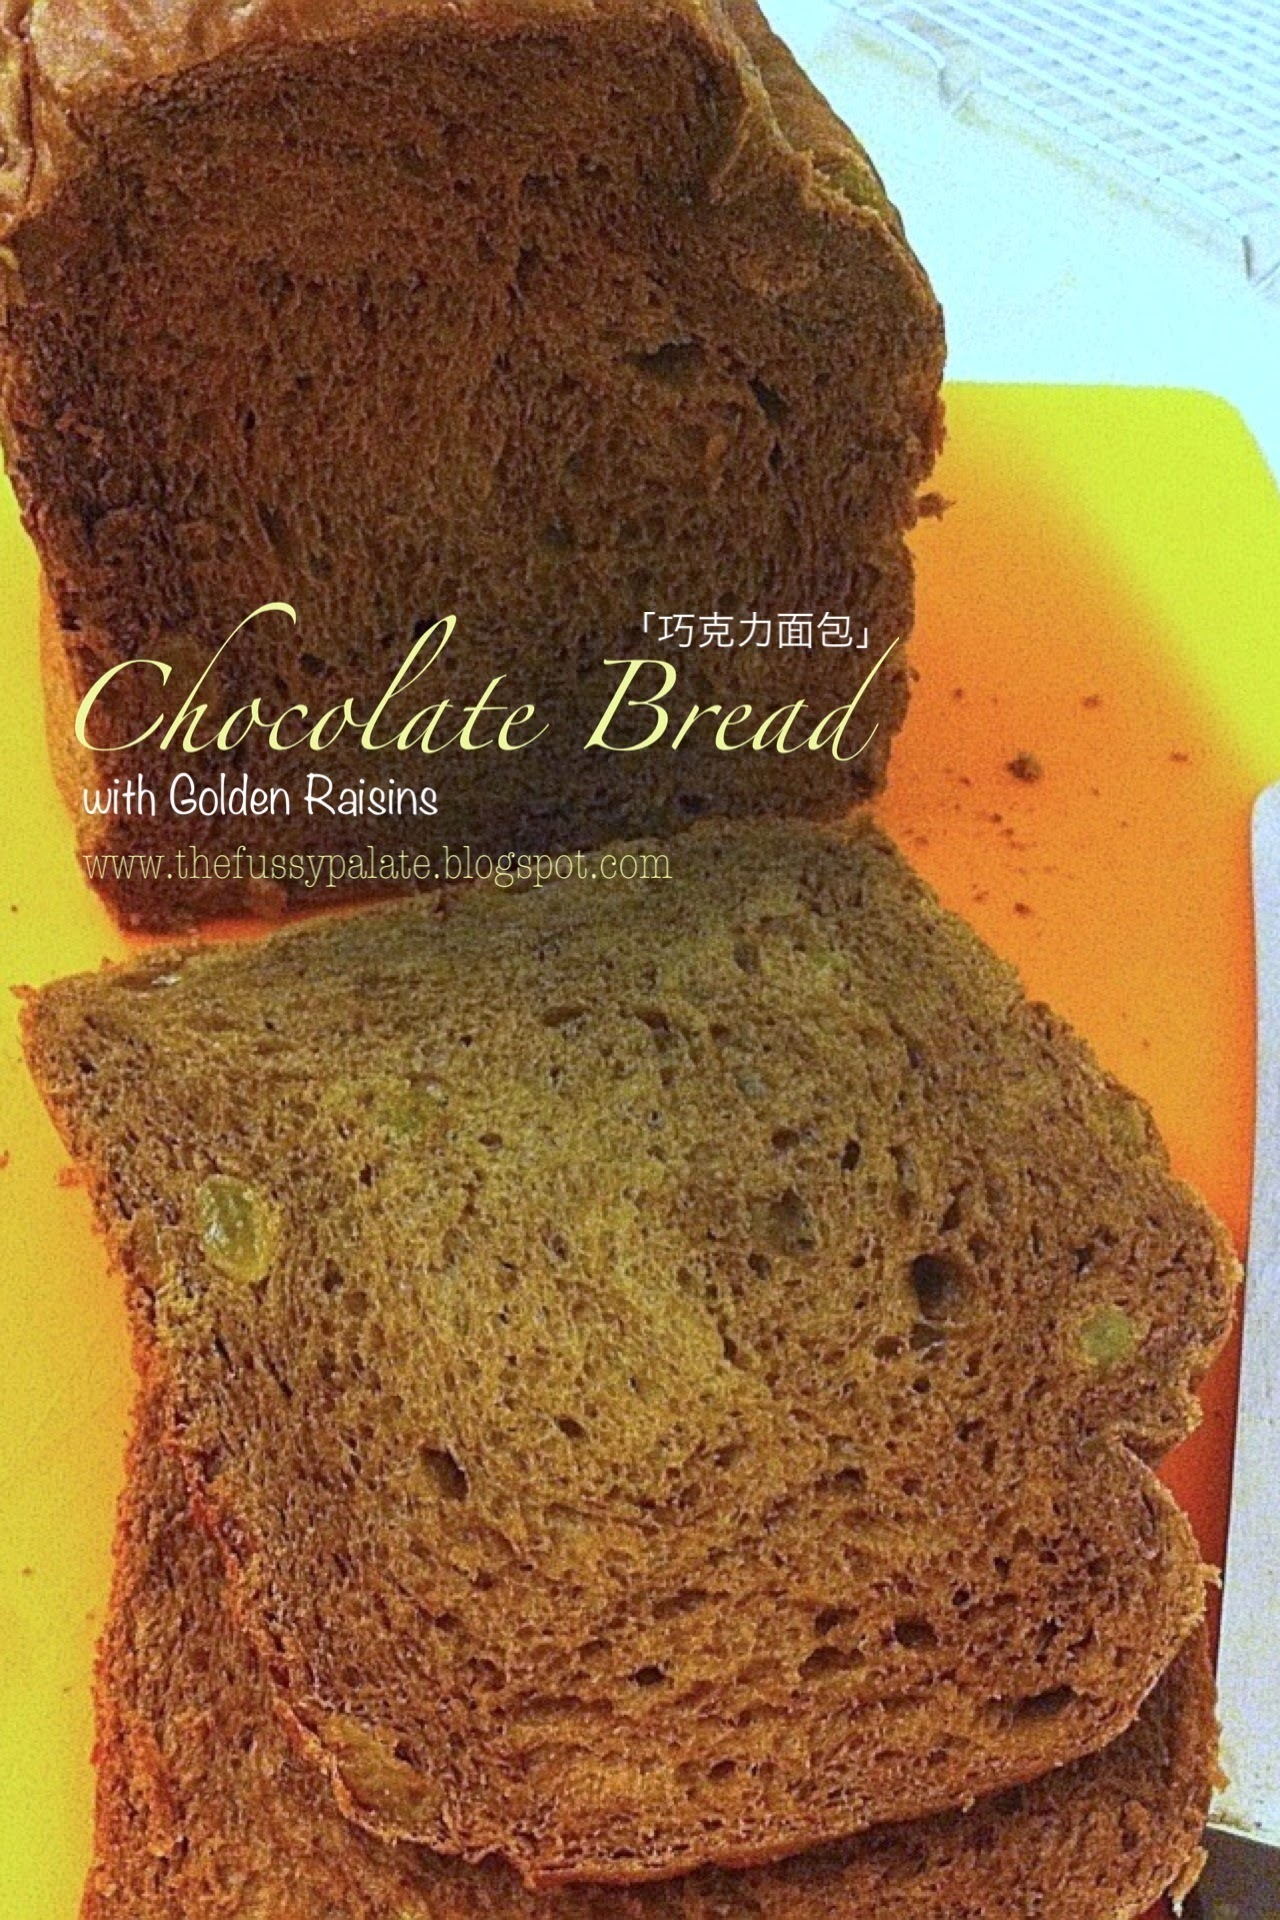 Chocolate Bread with Golden Raisins